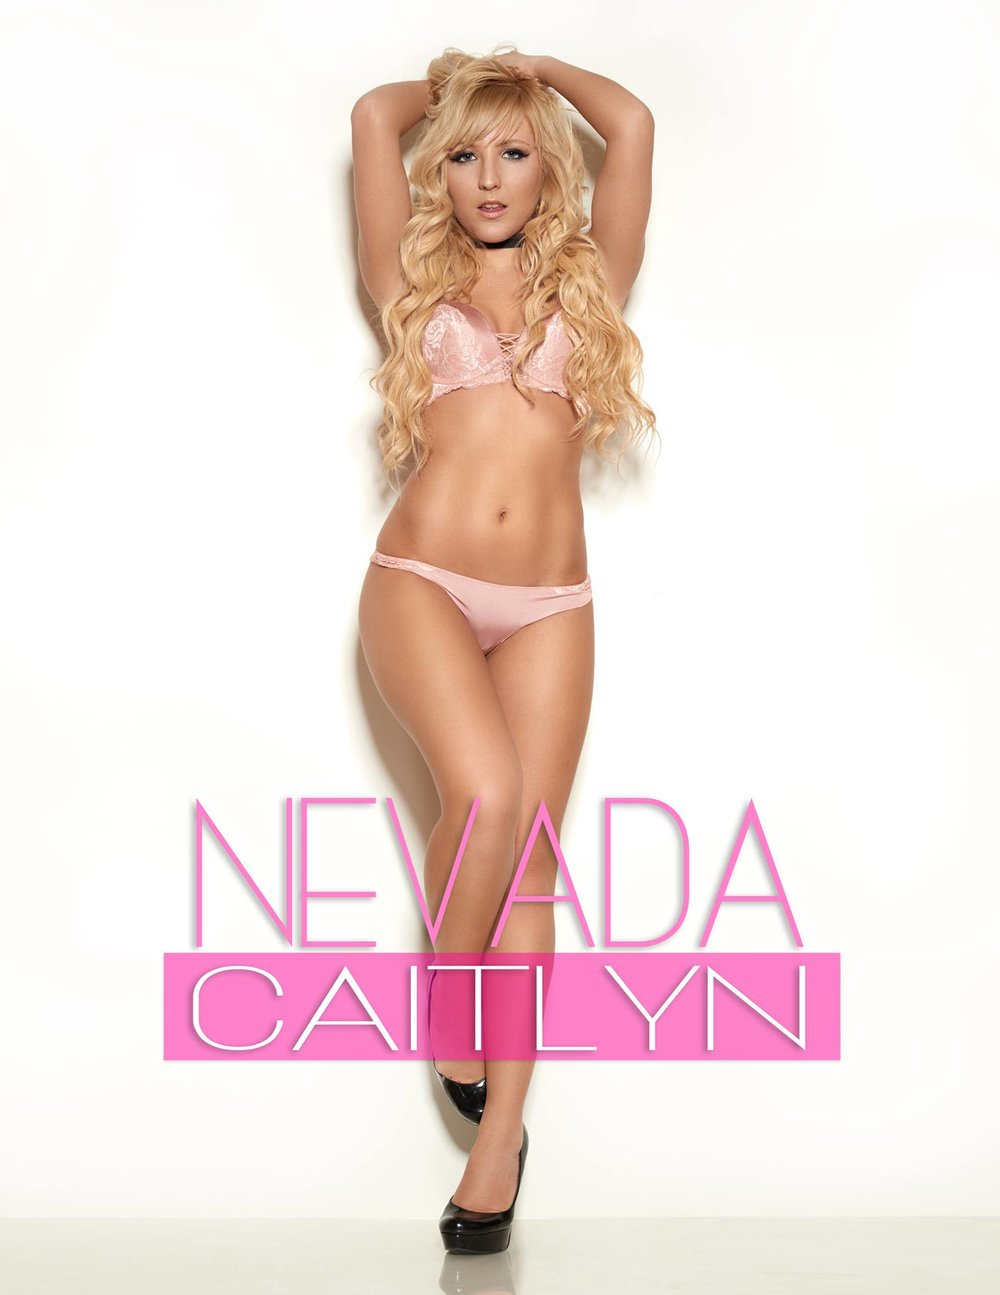 Nevada Caitlyn Published in The Epitome Magazine